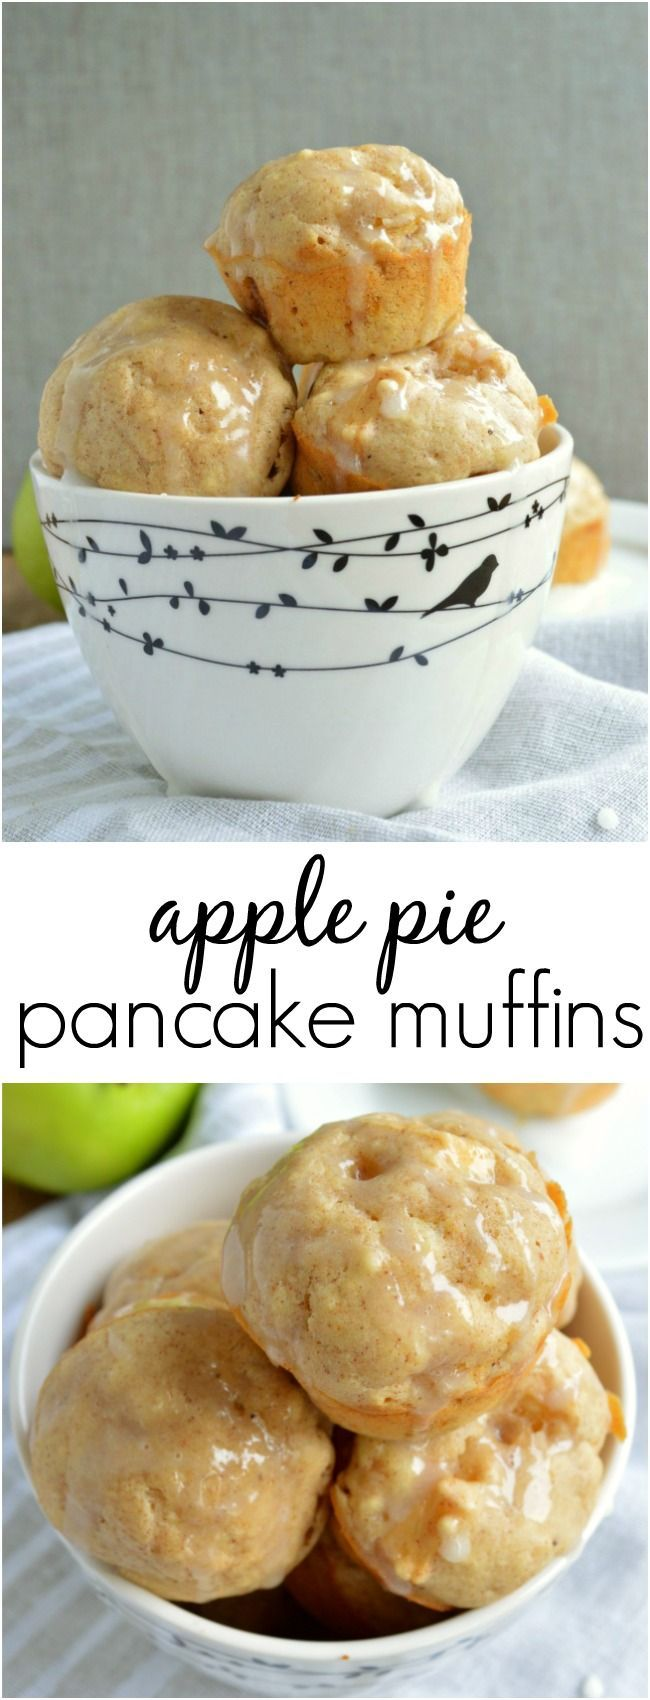 These Apple Pie Pancake Muffins are easy, fluffy little bites you can eat with your fingers! This breakfast recipe has fall goodness in every bite!